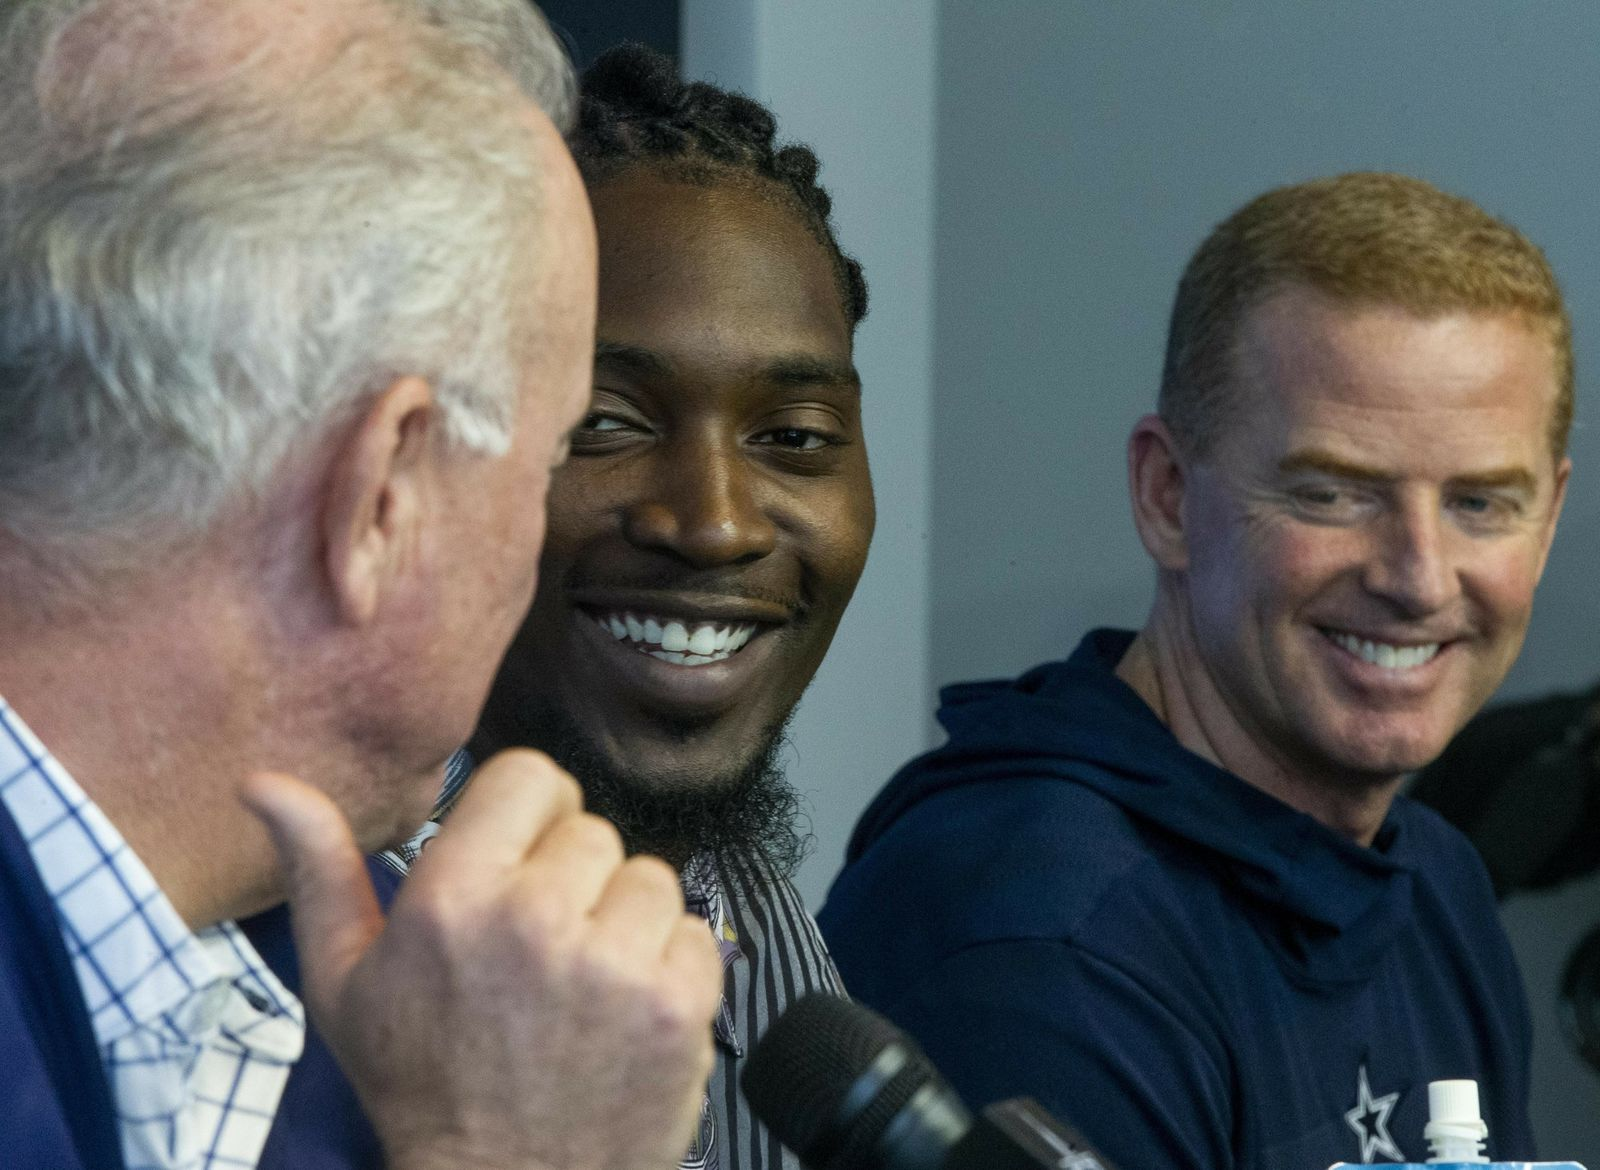 Dallas Cowboys defensive end Demarcus Lawrence, center, laughs along with CEO Stephen Jones and head coach Jason Garrett during a press conference at The Star in Frisco, Texas, Tuesday, April 9, 2019. DeMarcus Lawrence may not be the highest-paid Dallas Cowboys player in history for long. It doesn't mean the club's best defensive end can't enjoy the distinction while it lasts. The 26-year-old Lawrence signed a $105 million, five-year contract Tuesday.(Shaban Athuman/The Dallas Morning News via AP)